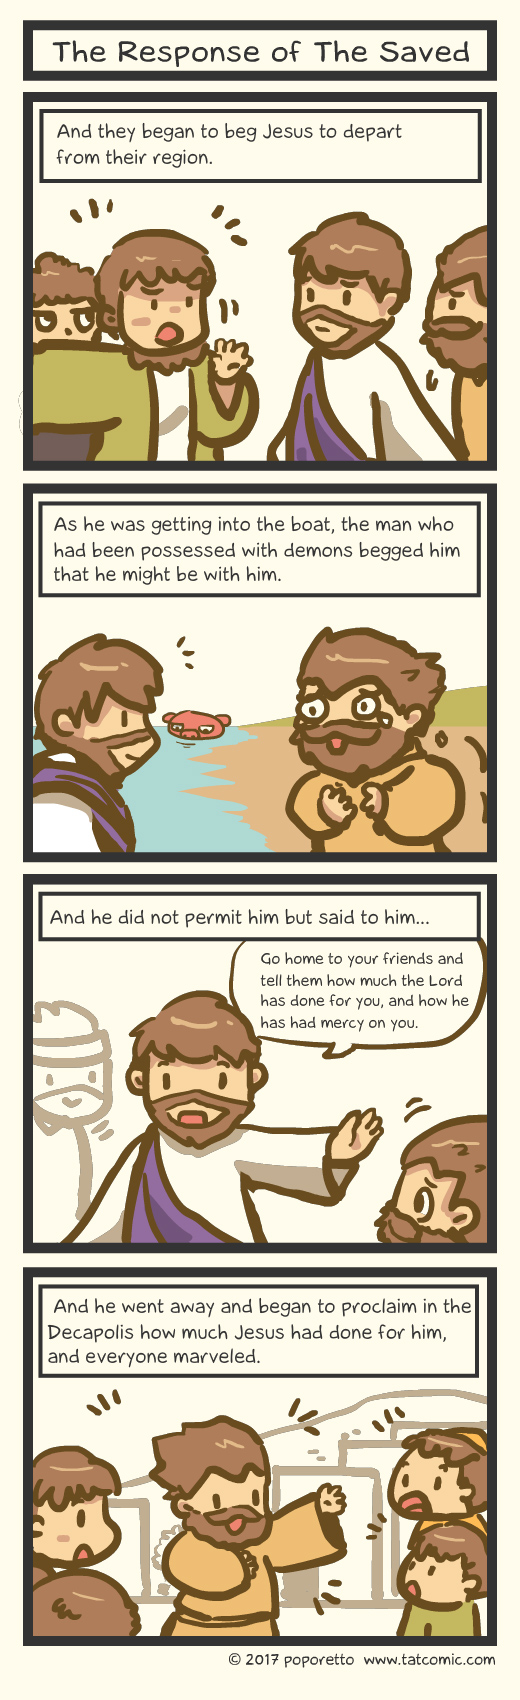 Gospel Christian comic strip jesus and his disciples went out to the sea and the storm caught up to them, jesus and the response from the cleansed man from legion